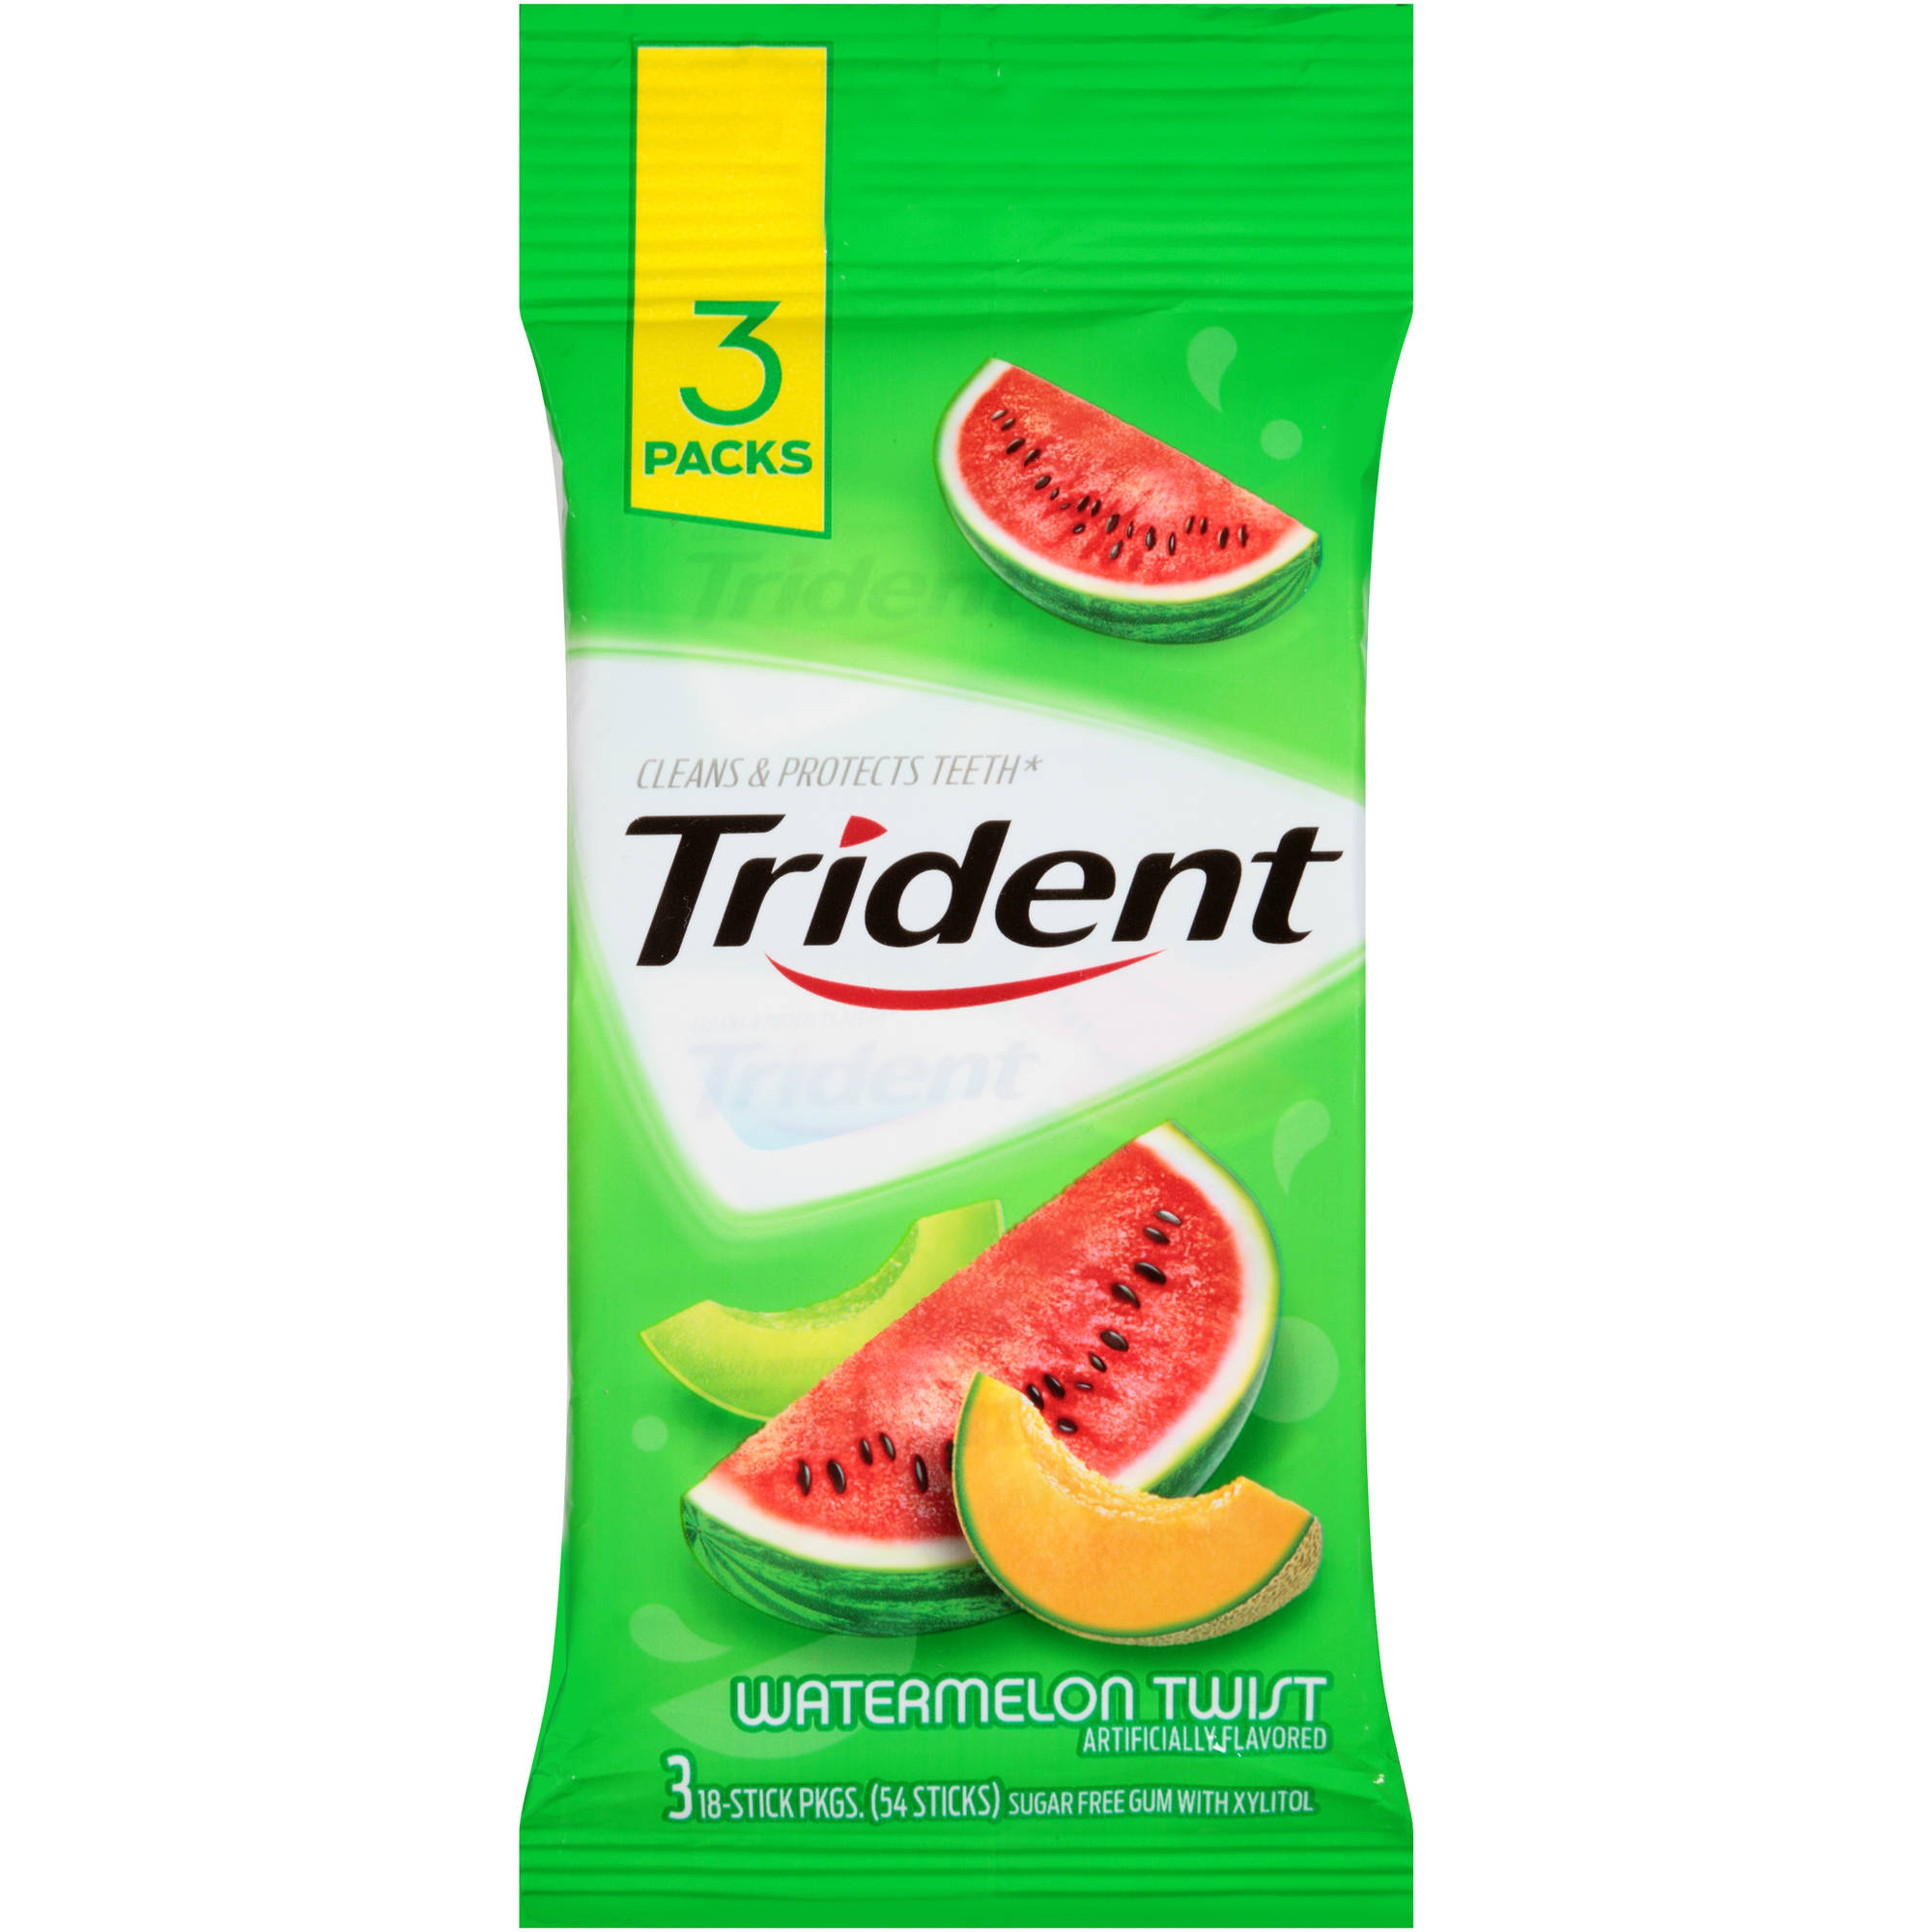 Trident Watermelon Twist Sugar Free Gum with Xylitol, 18 pc, 3 count